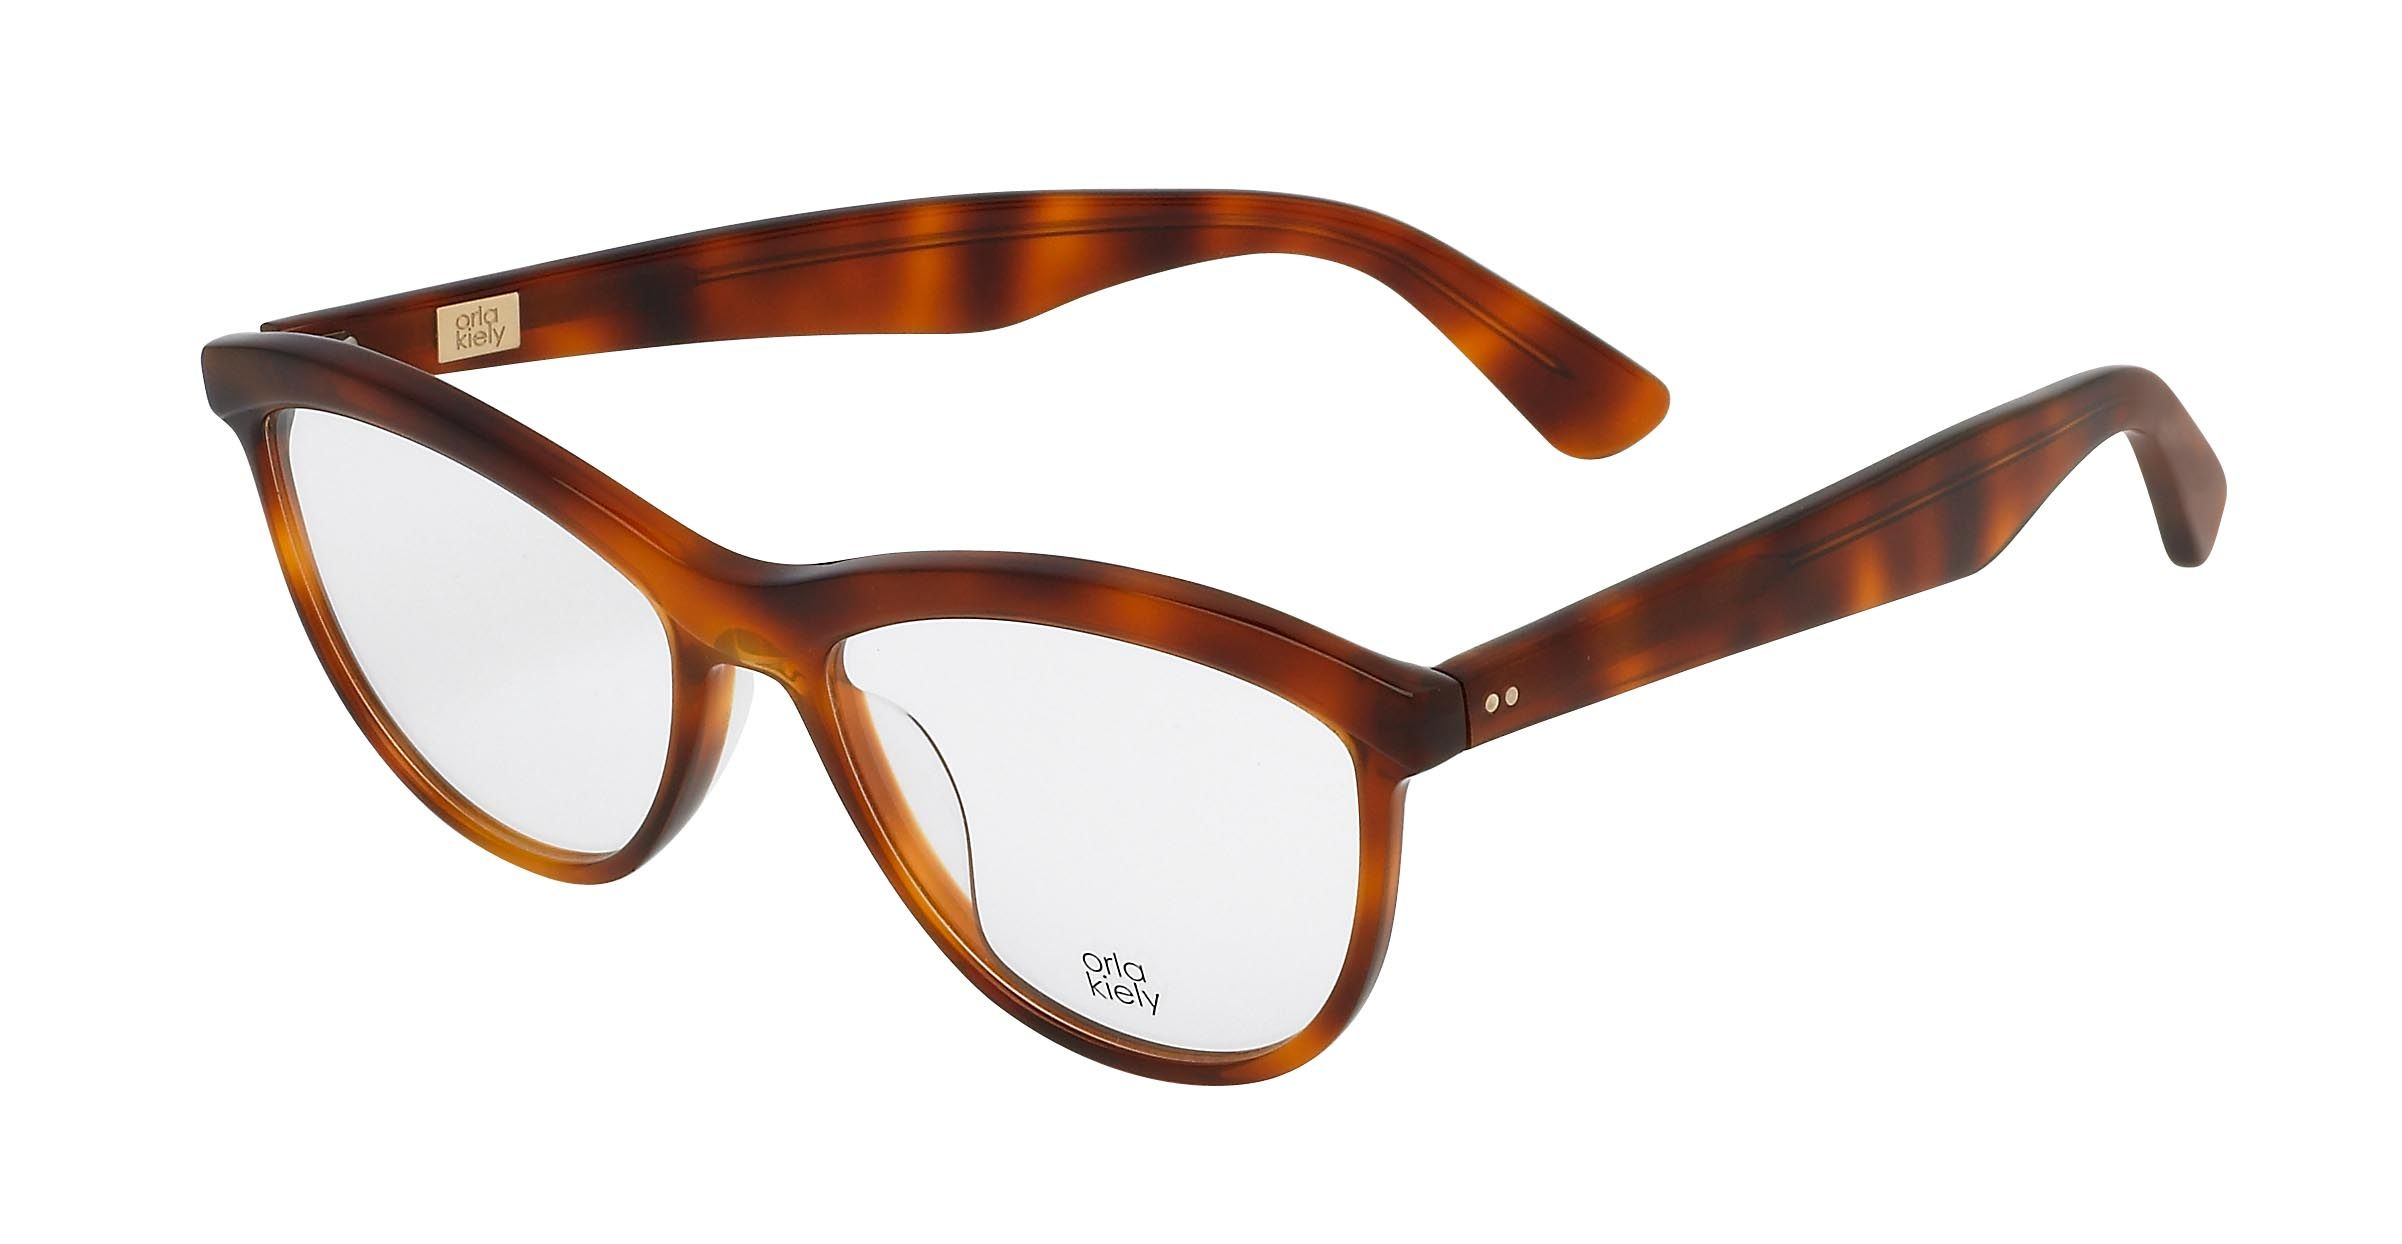 c02e1a9eff73 Orla Kiely glasses avaliable at Boots Opticians | My Style | Boots ...